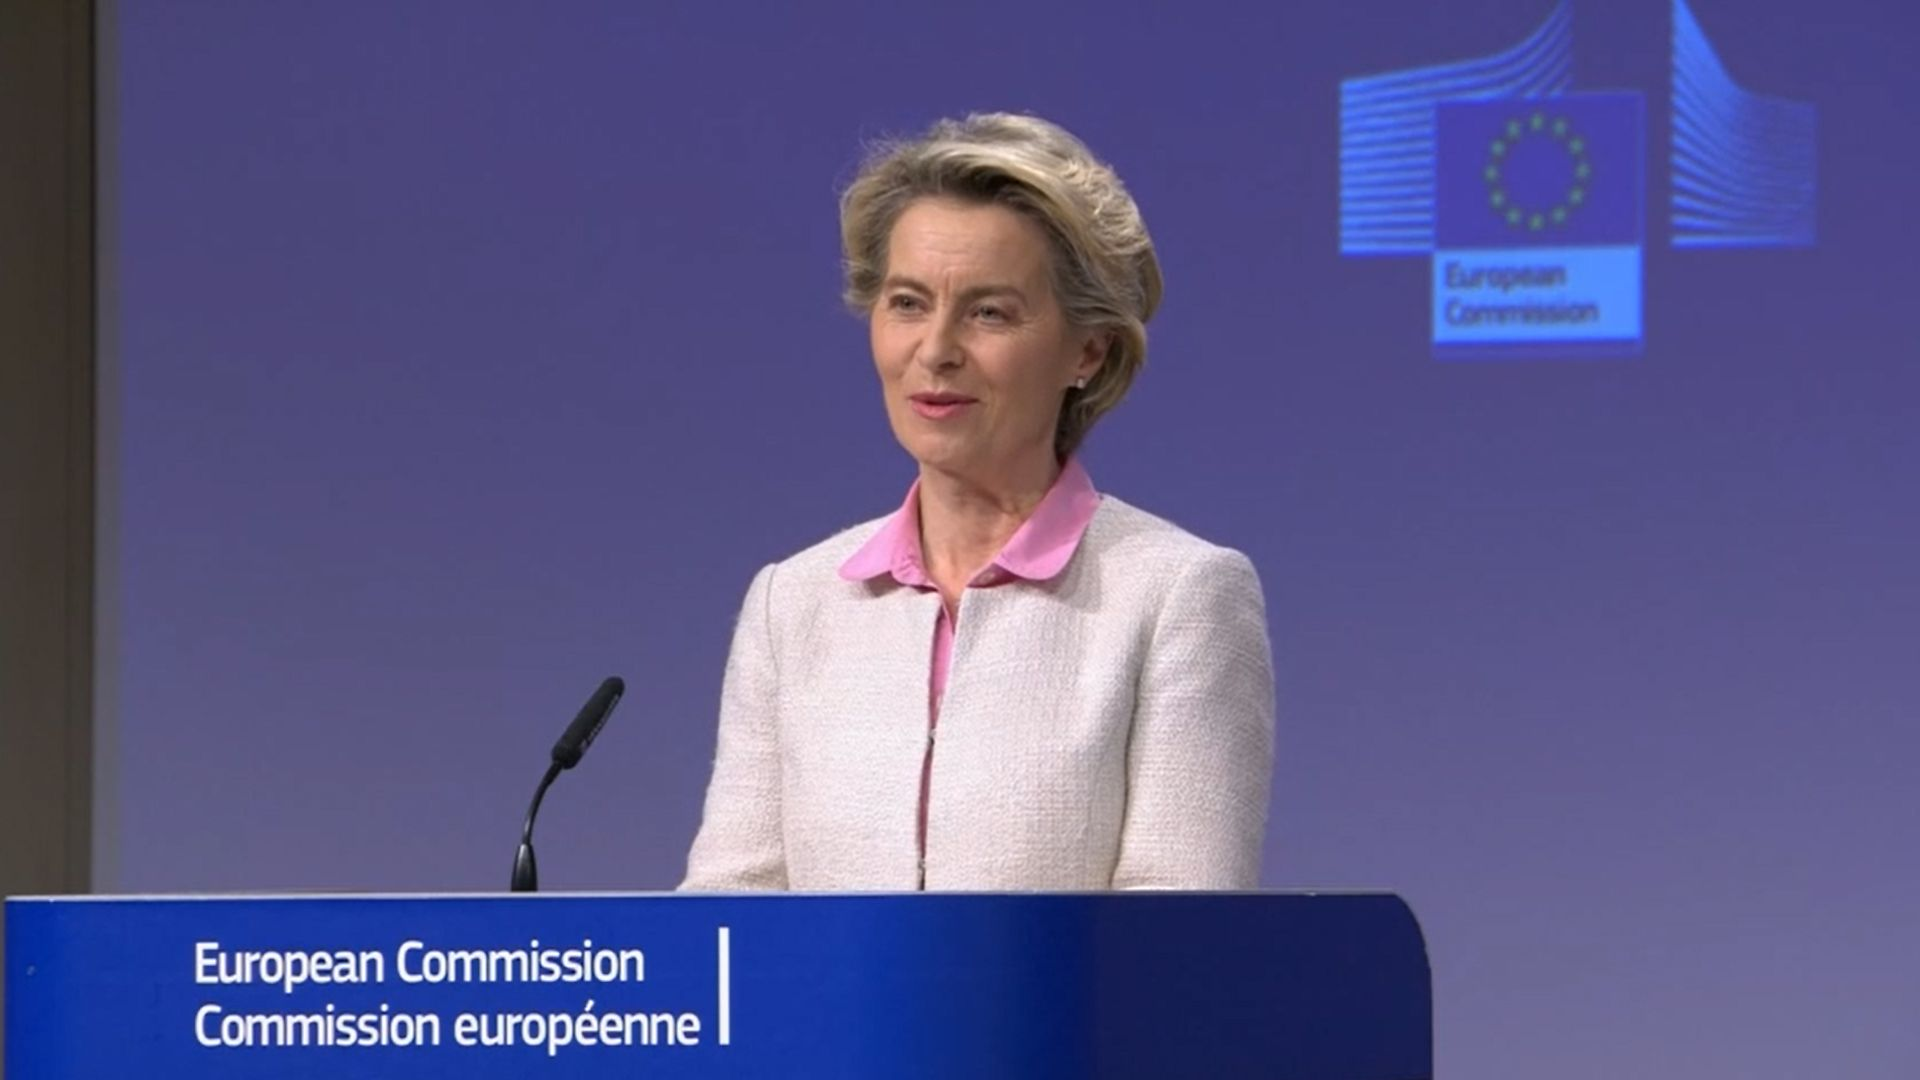 Screen grab of European Commission president Ursula von der Leyen during a media briefing in Brussels - Credit: PA